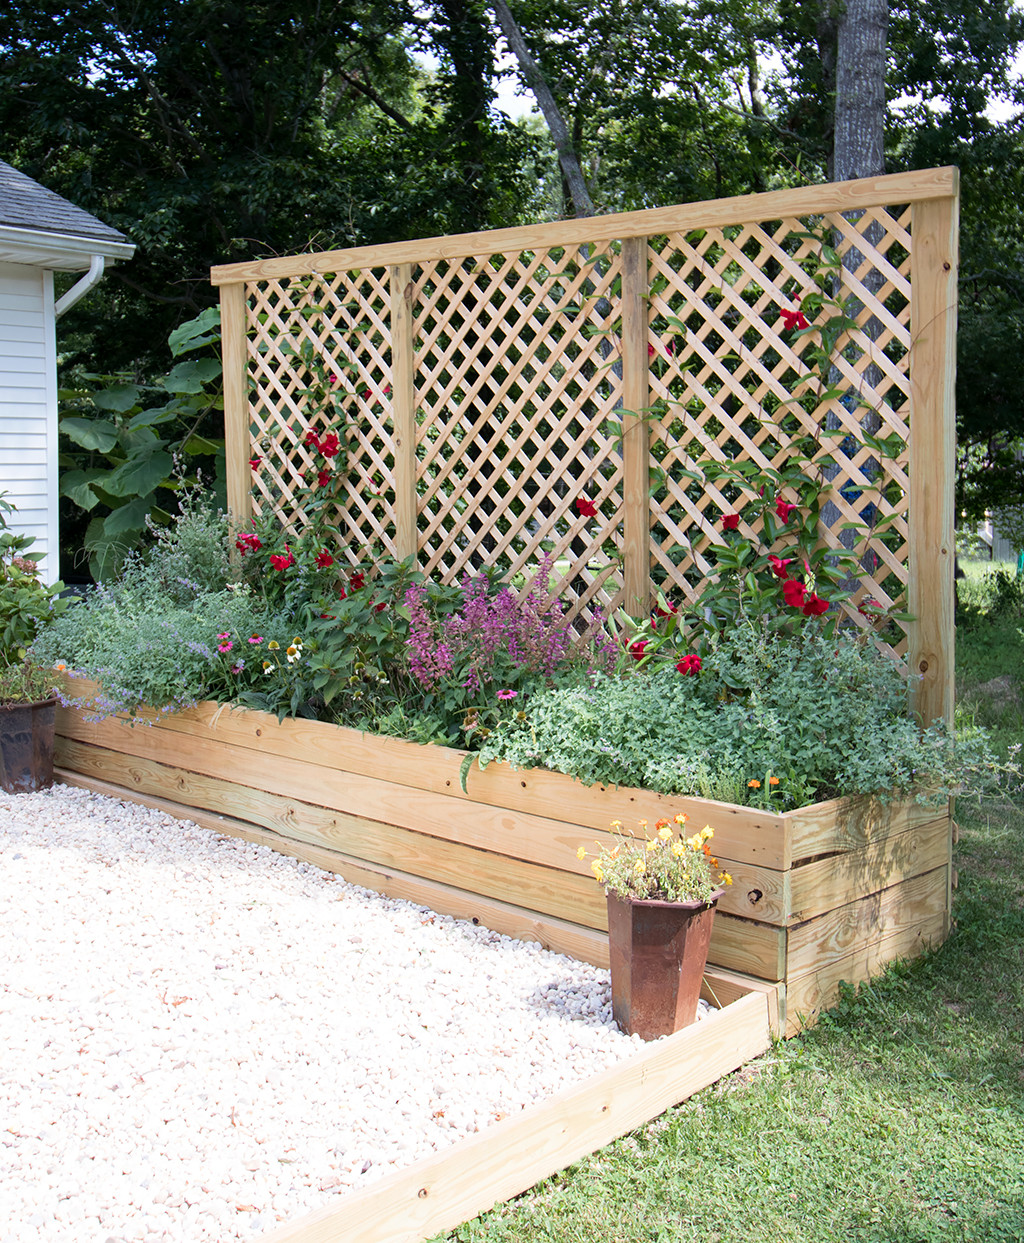 Best ideas about DIY Privacy Screen . Save or Pin Privacy Screen Planter DIY Gina Michele Now.